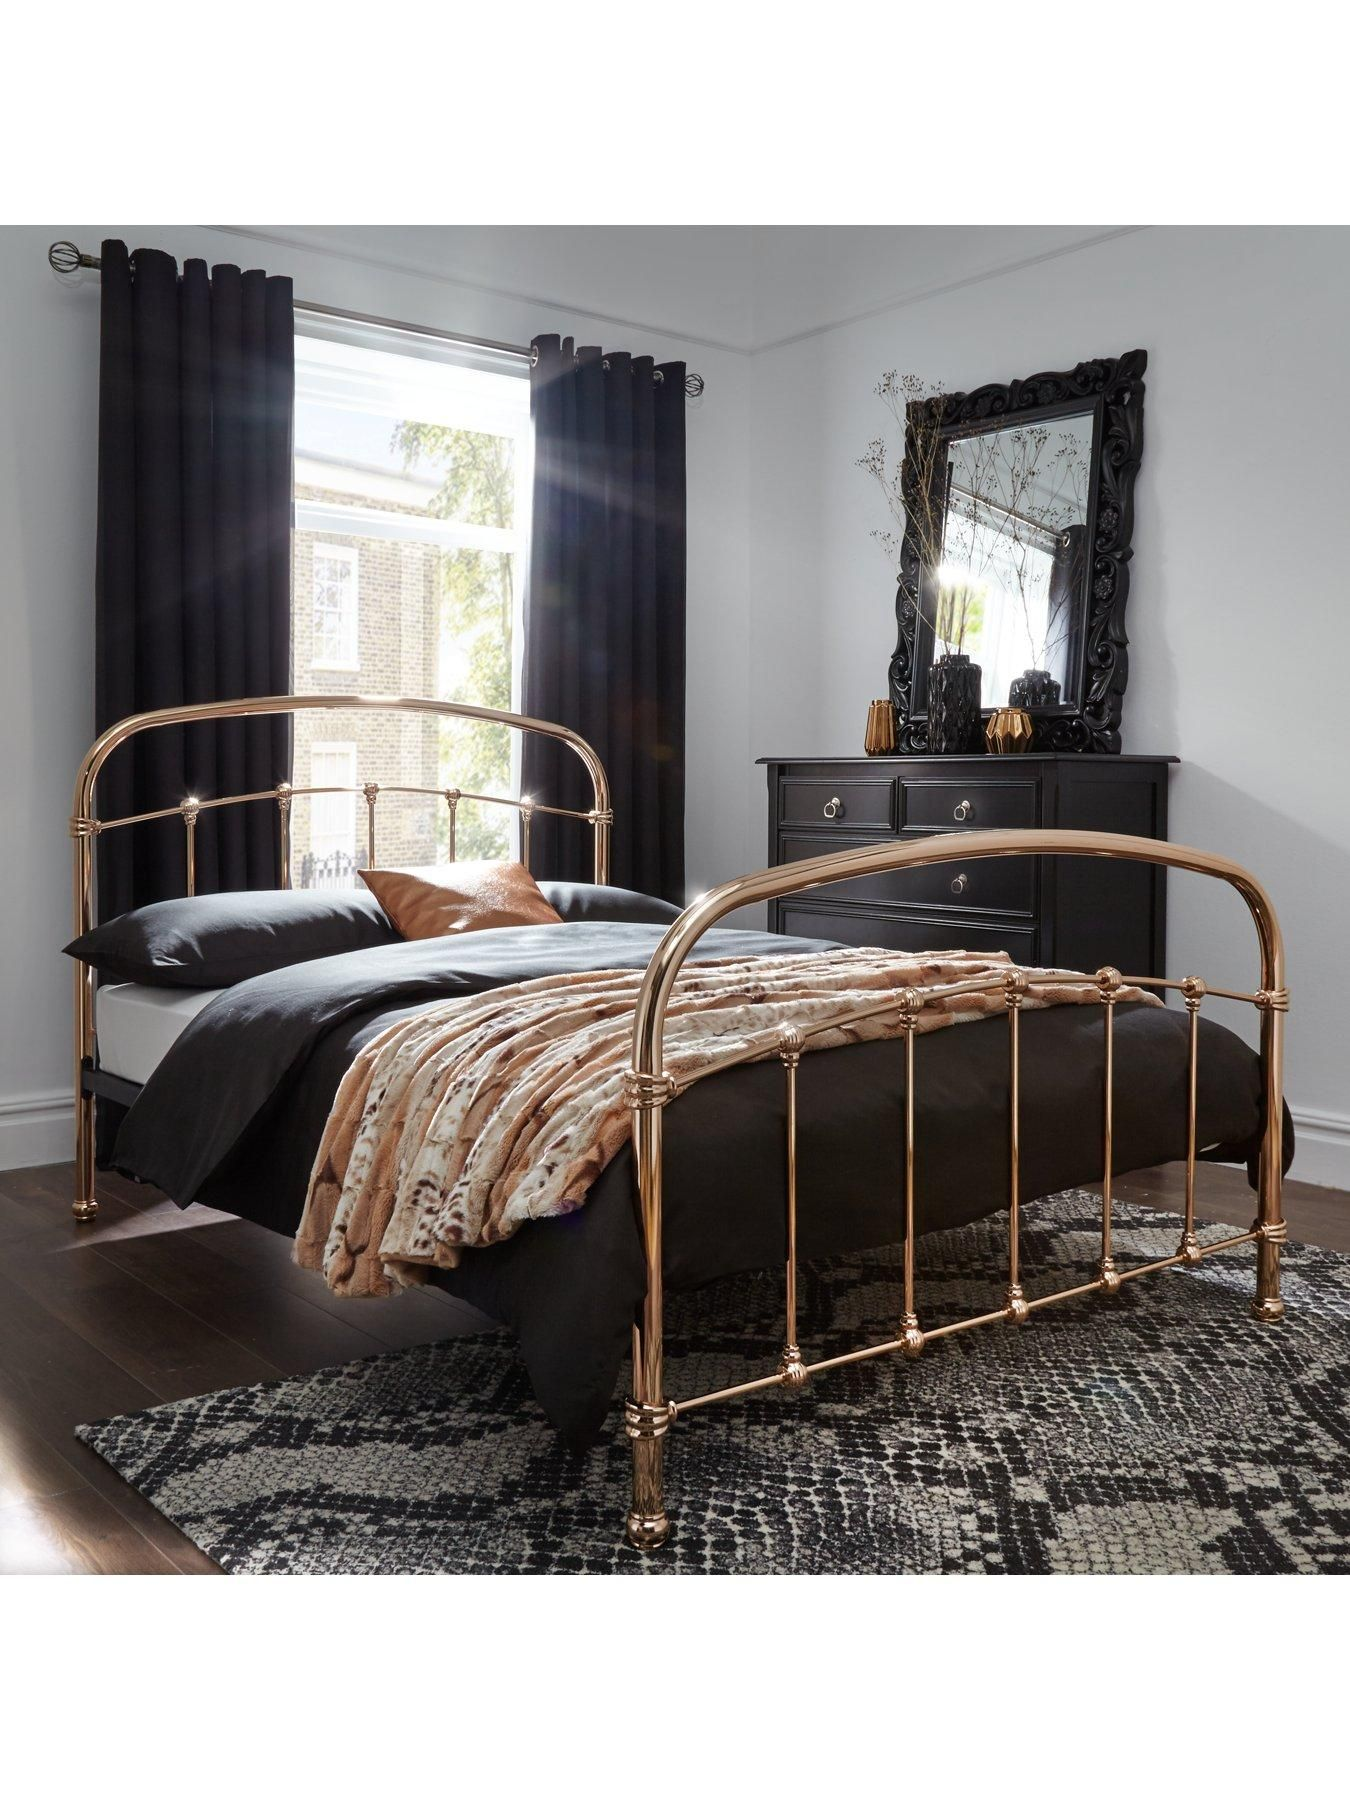 Self Assembly Bedroom Furniture Statement Design The Classically Designed Lambeth Metal Bed Self